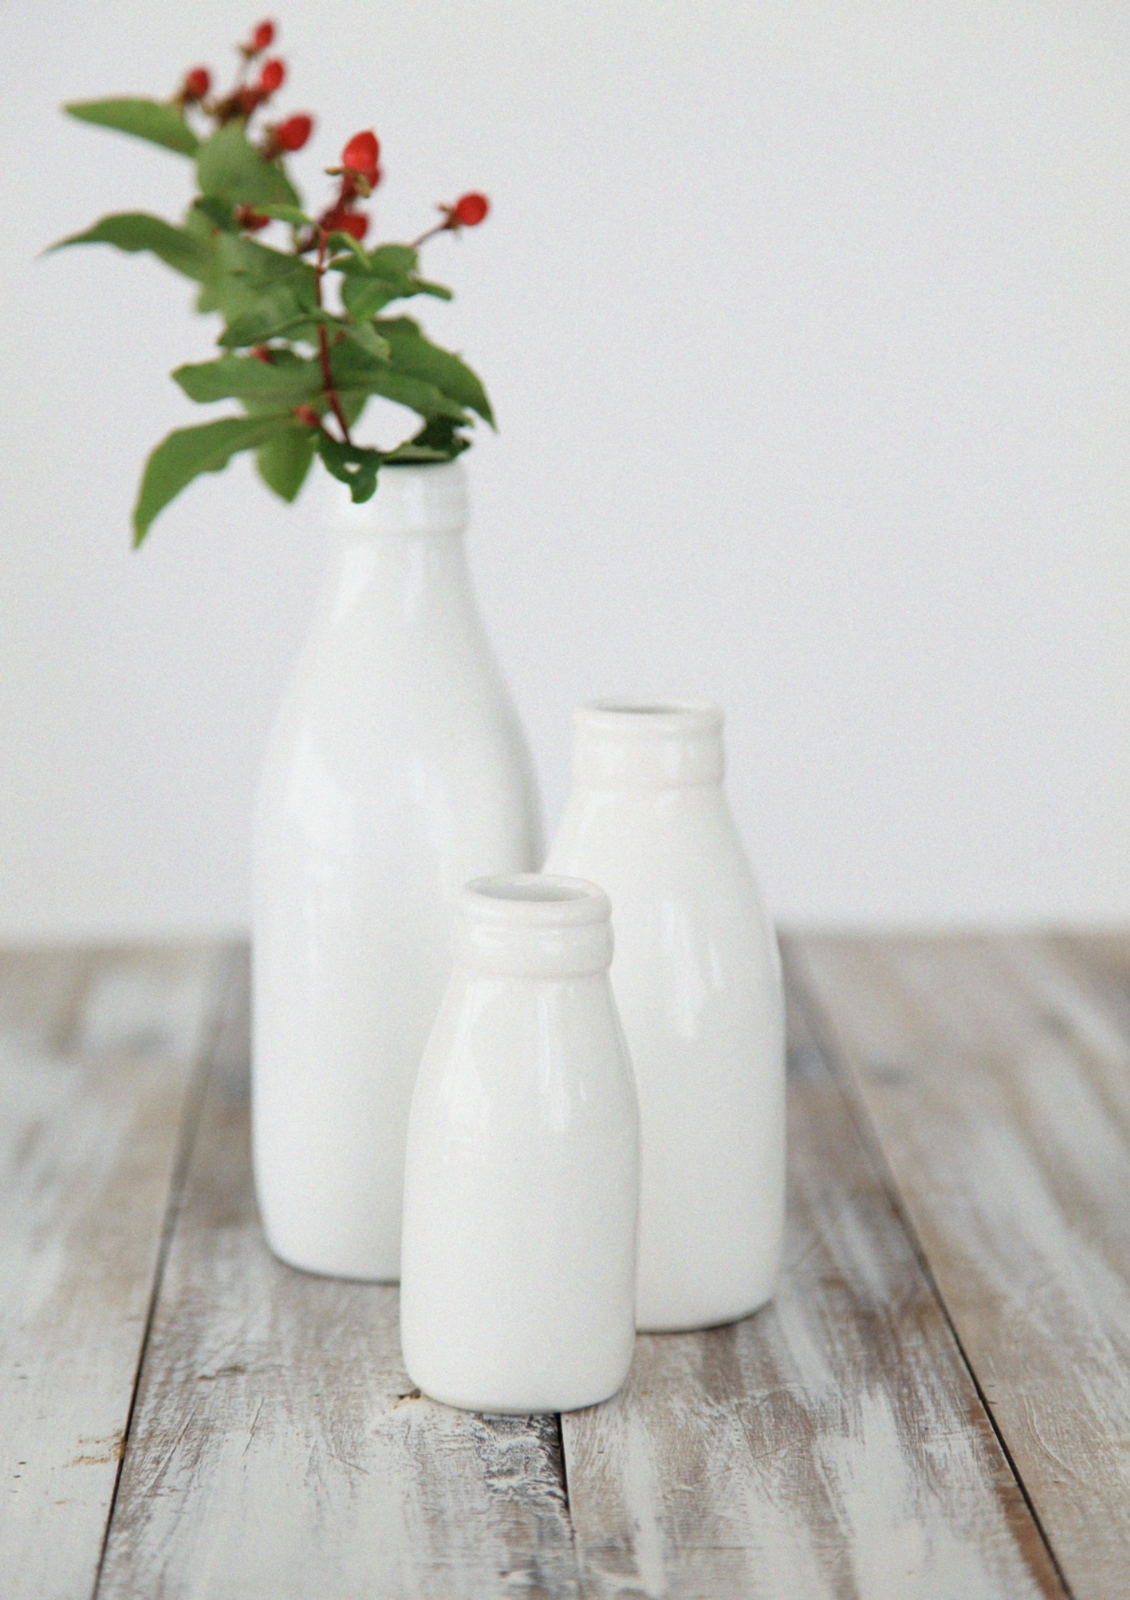 Set of 3 milk bottle vases gloss white felt set of 3 milk bottle vases gloss white reviewsmspy